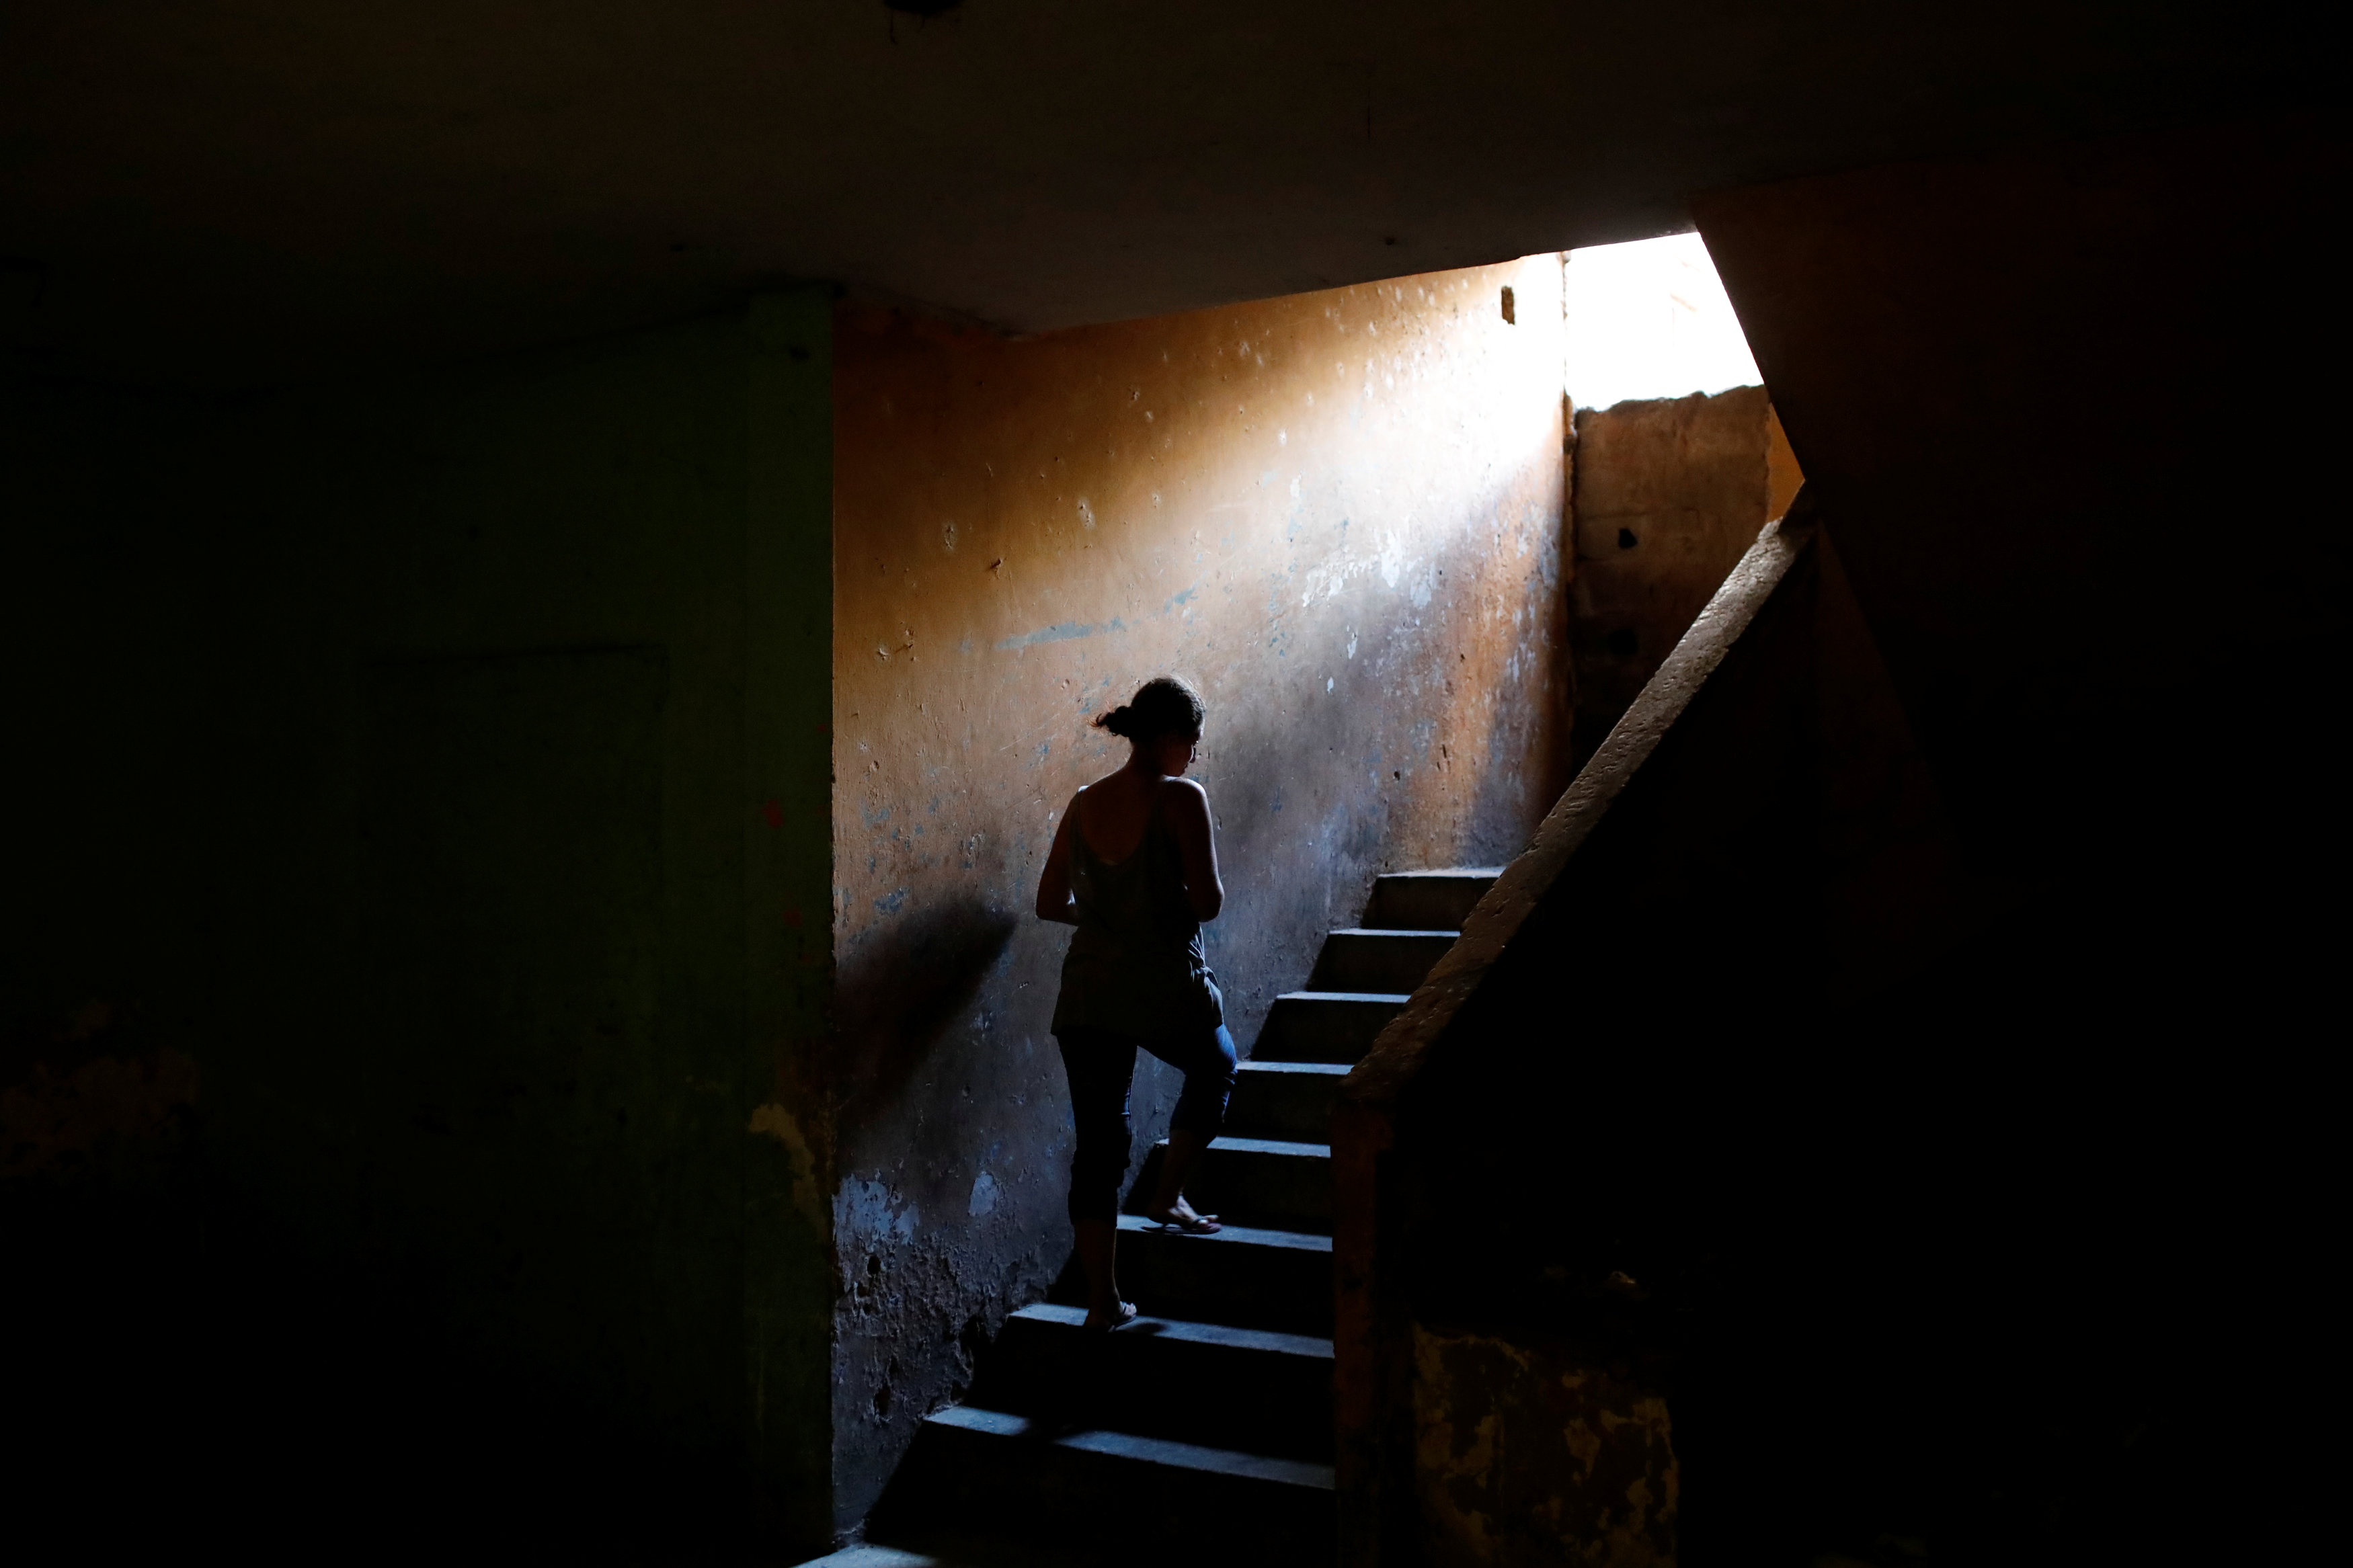 Elizabeth Altuve climbs the stairs at the occupied building where she lives in Maracaibo, Venezuela July 26, 2018. Picture taken July 26, 2018. REUTERS/Marco Bell